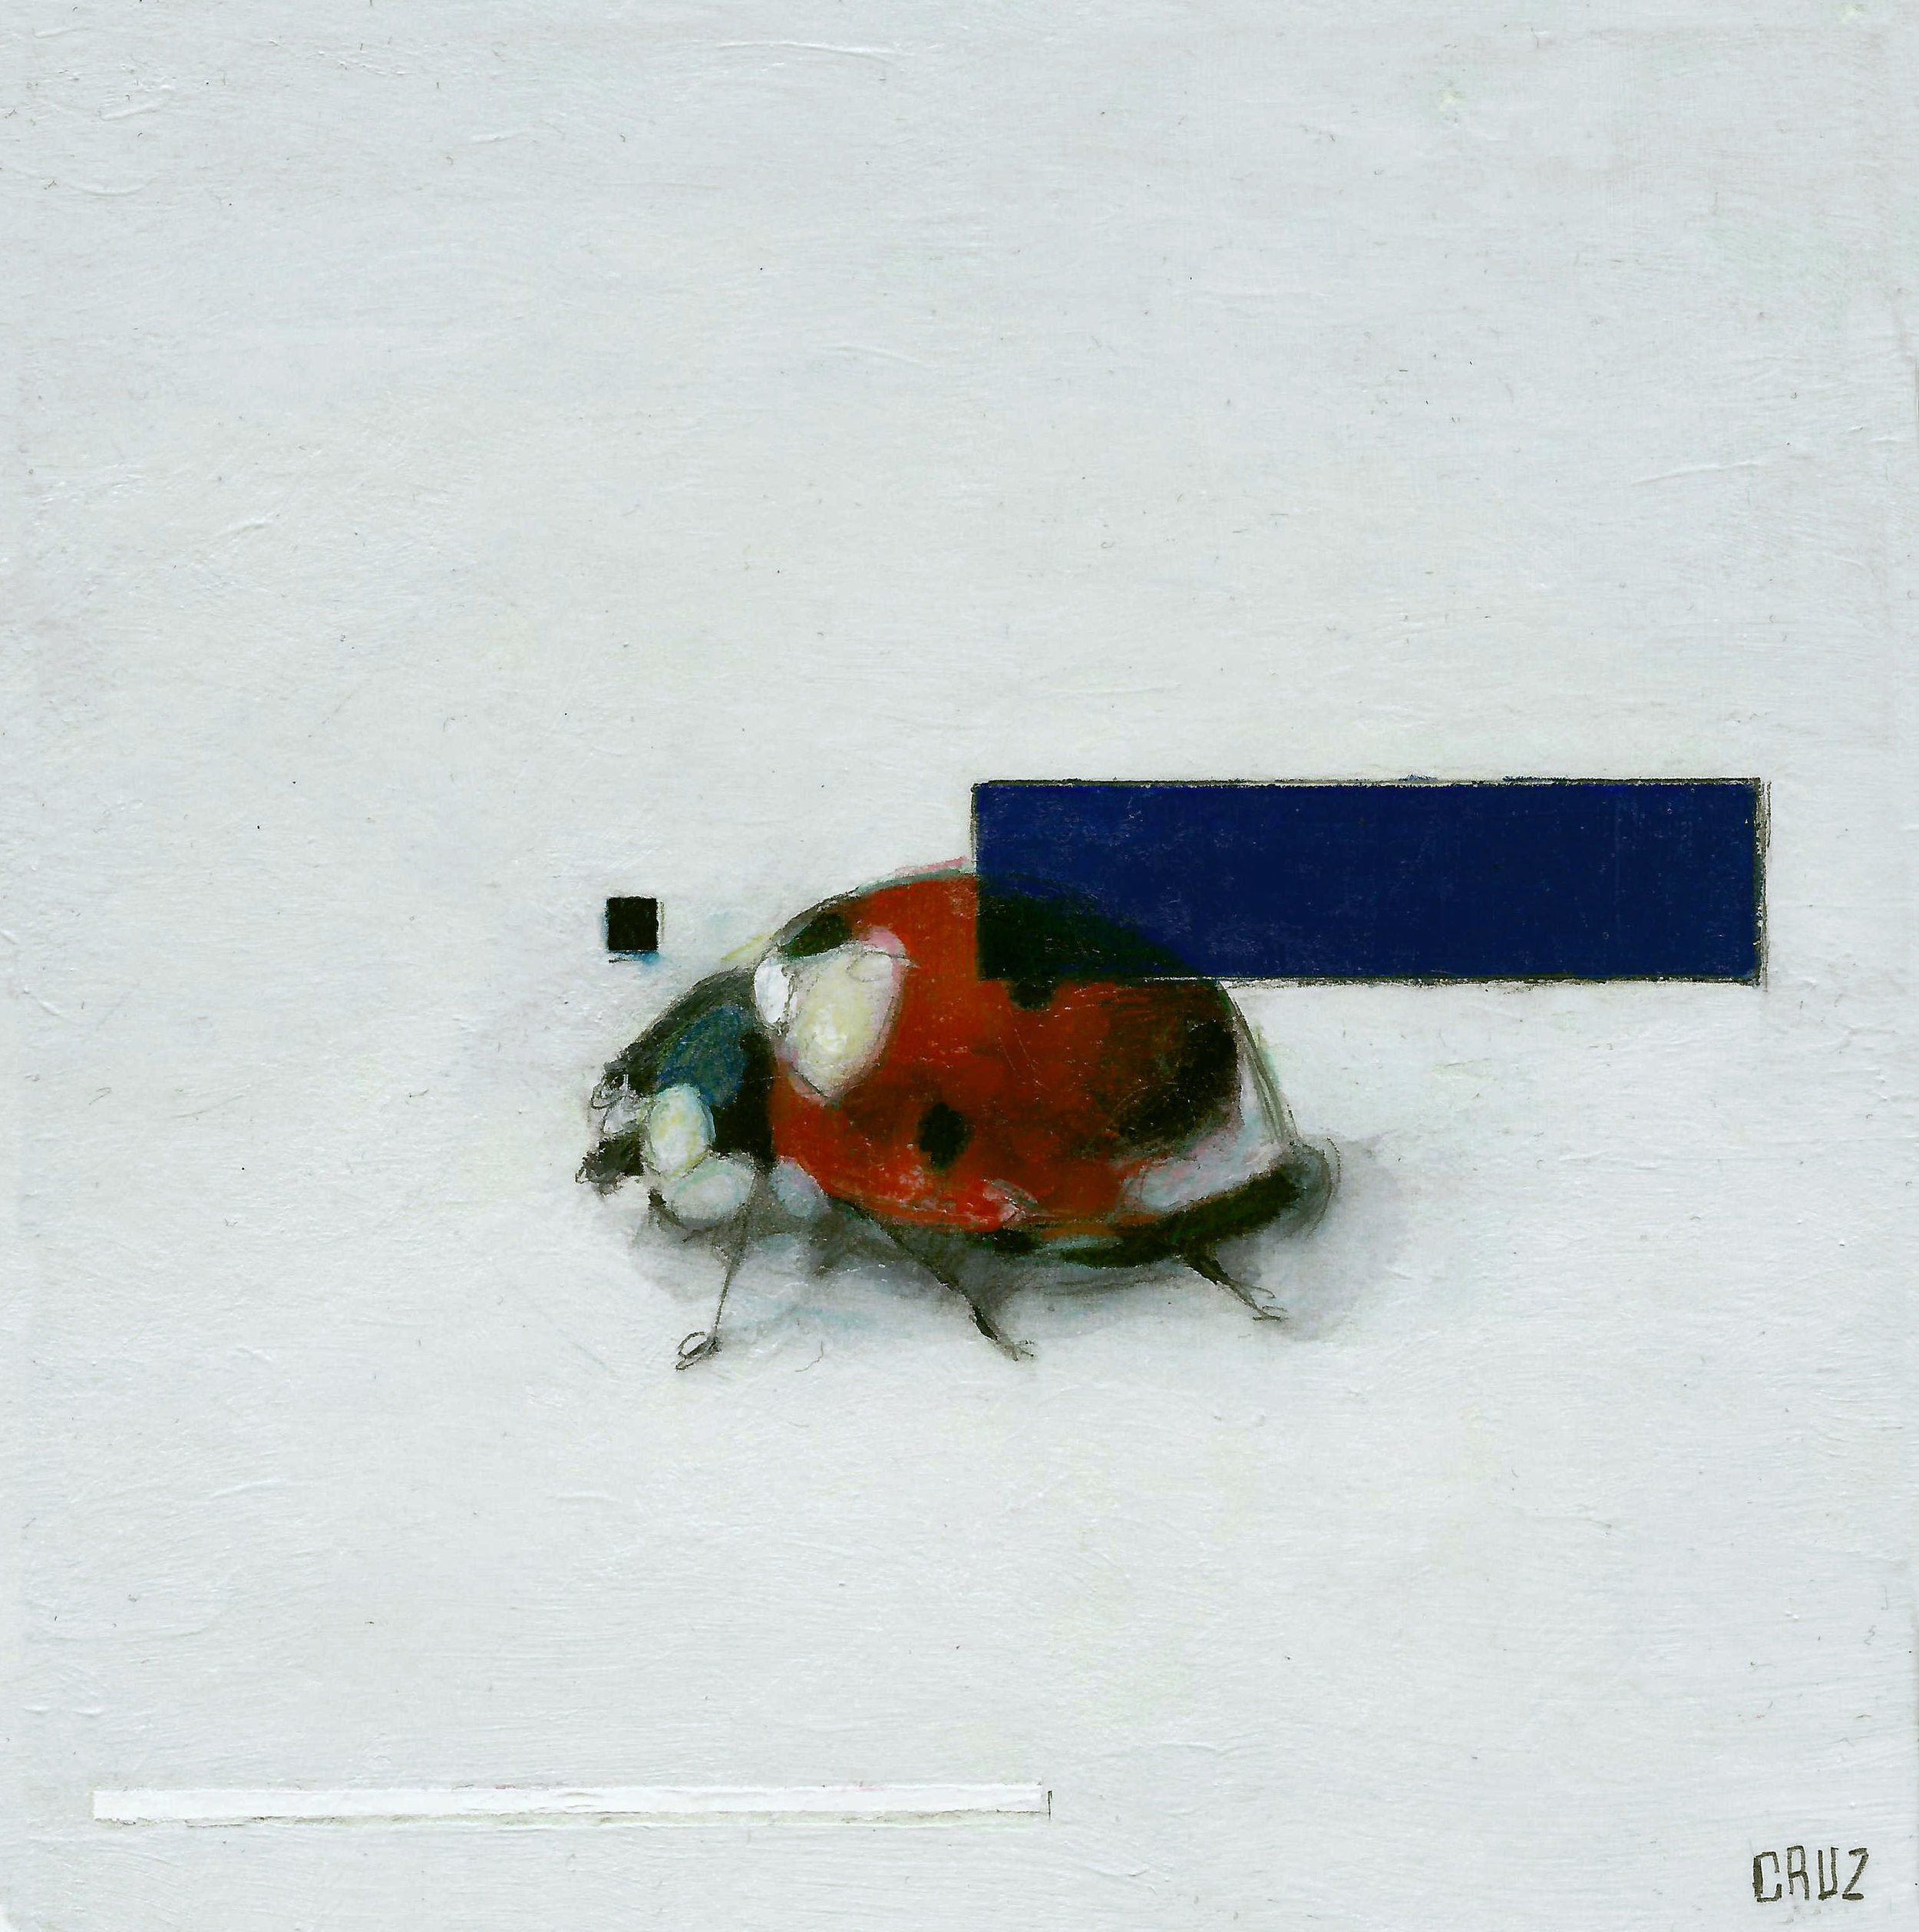 Ladybug with Three Witnesses